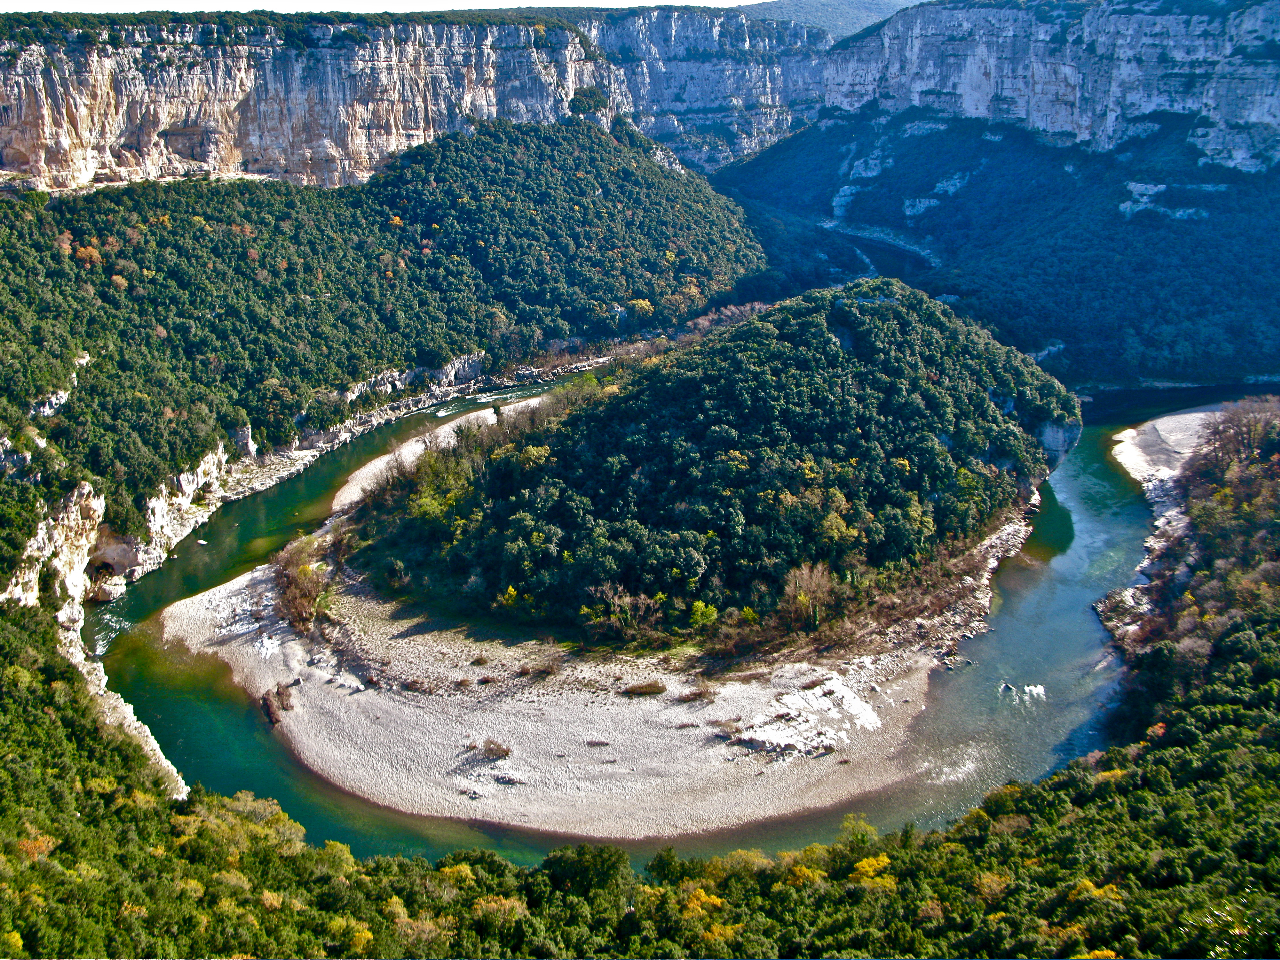 Meandre gorges ardeche